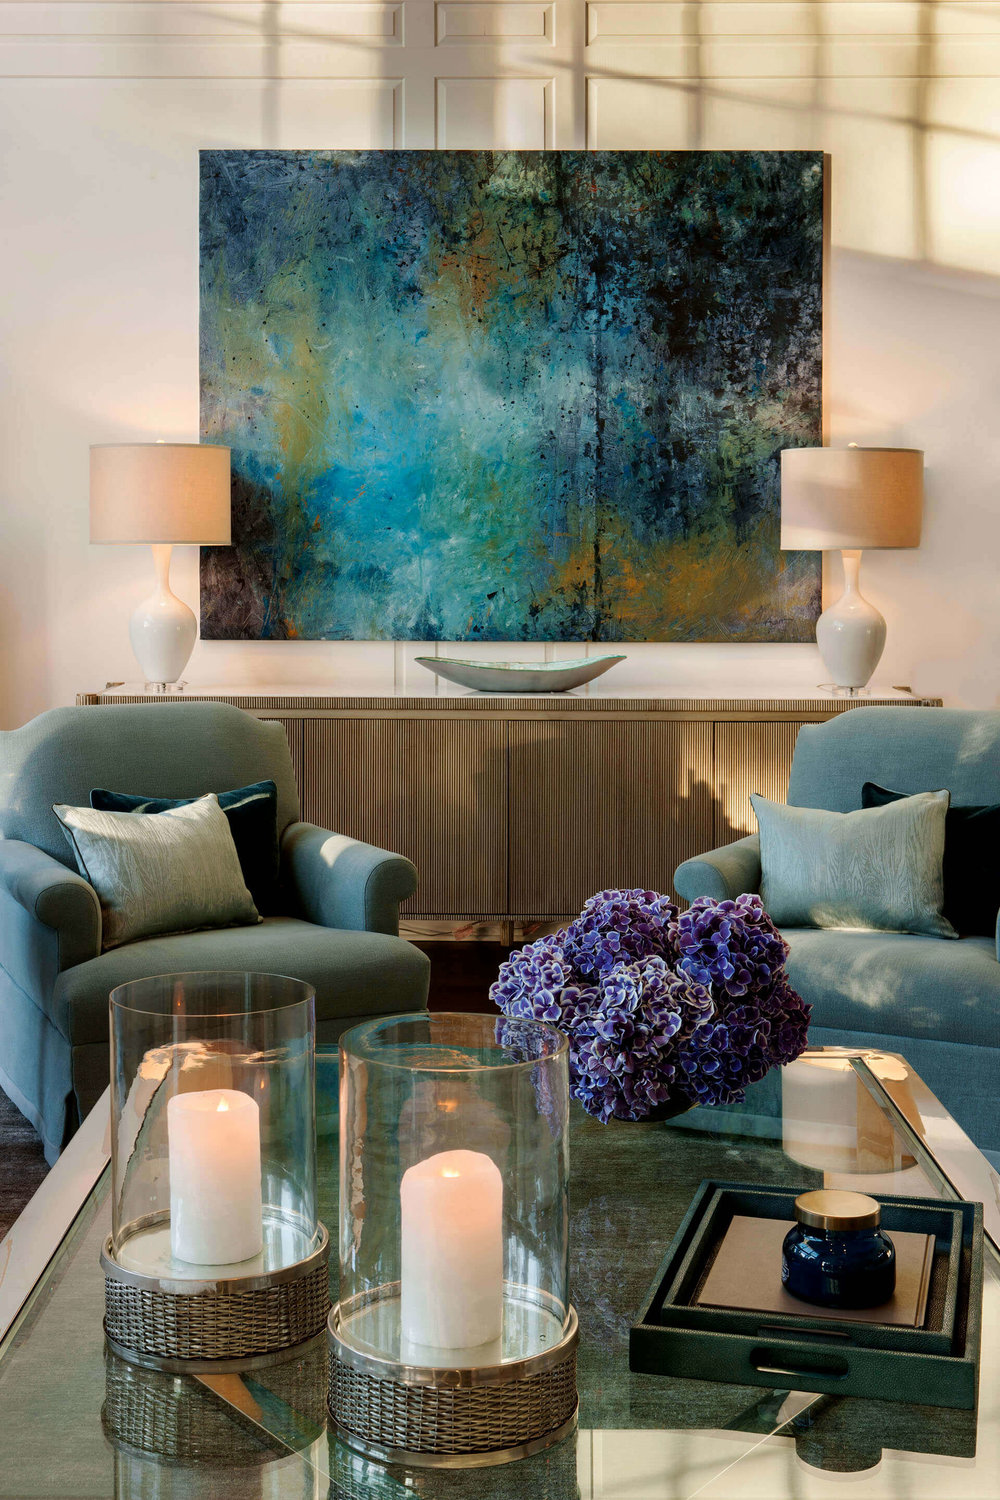 elizabeth-tapper-interiors-brentwood-formal-living-room-lounge-chairs.jpg